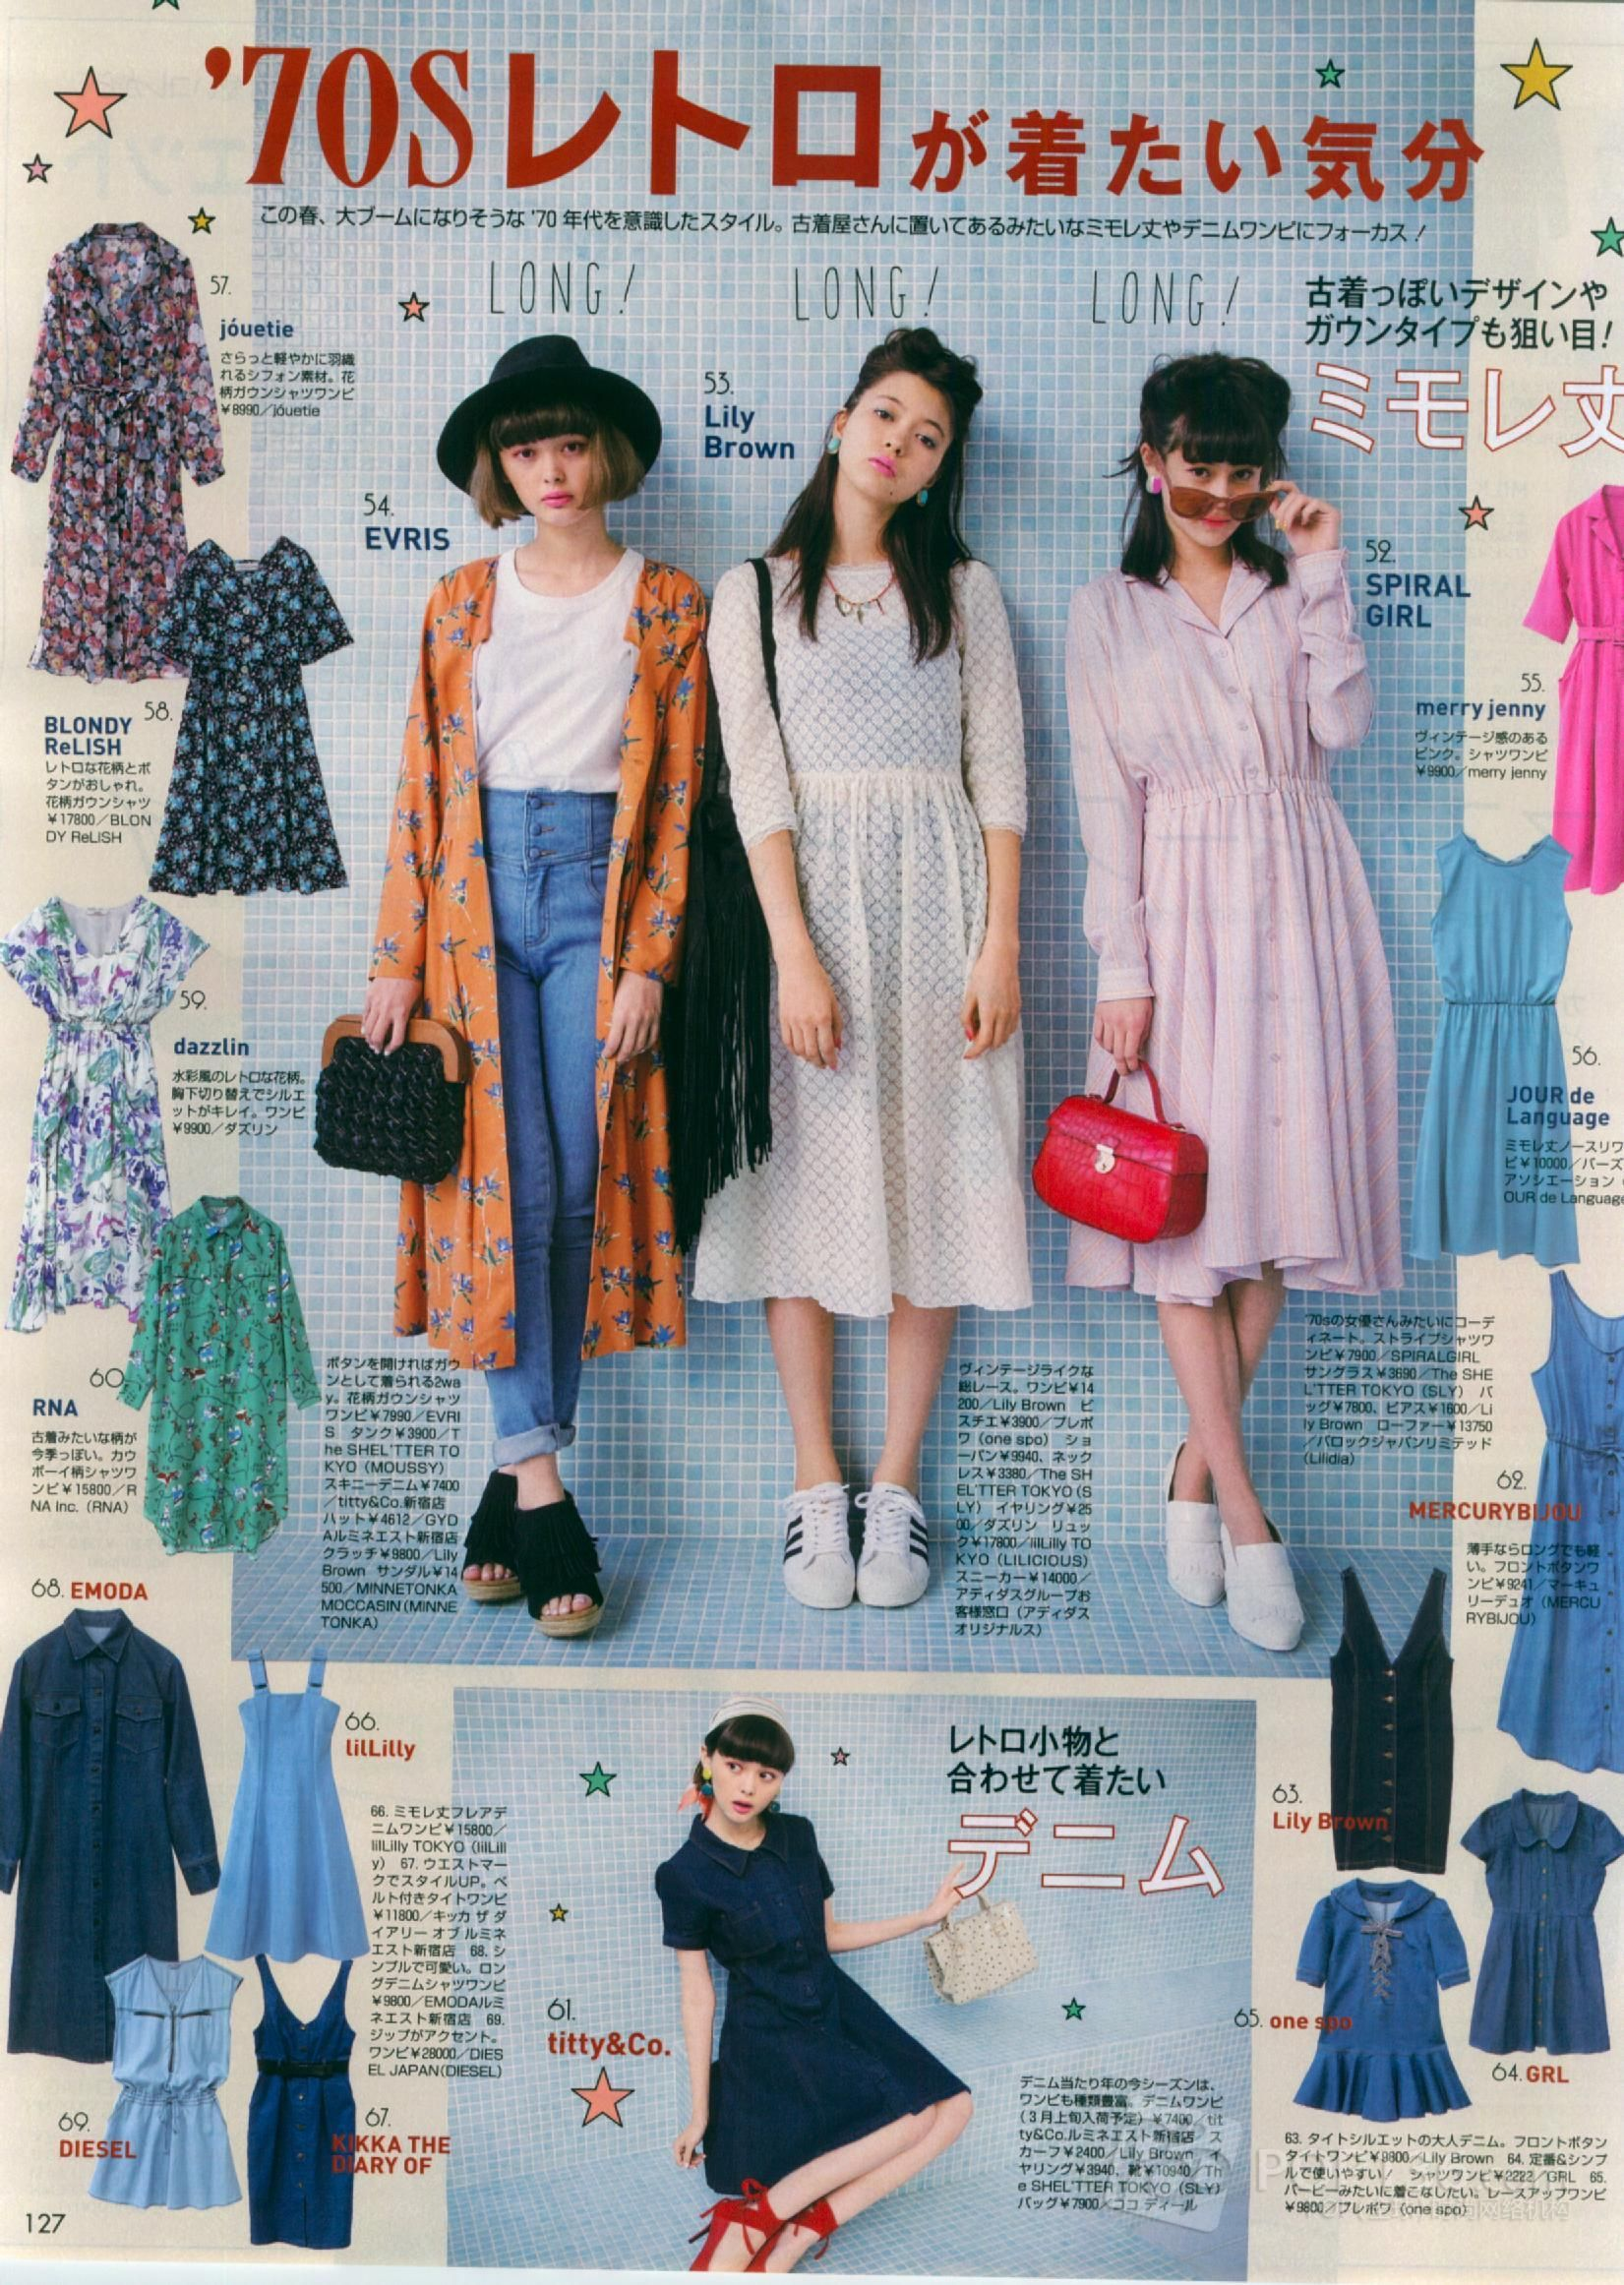 I Think I Like This 90 39 S Fashion Look A Bit Too Much Vivi Magazine March 2015 Japan